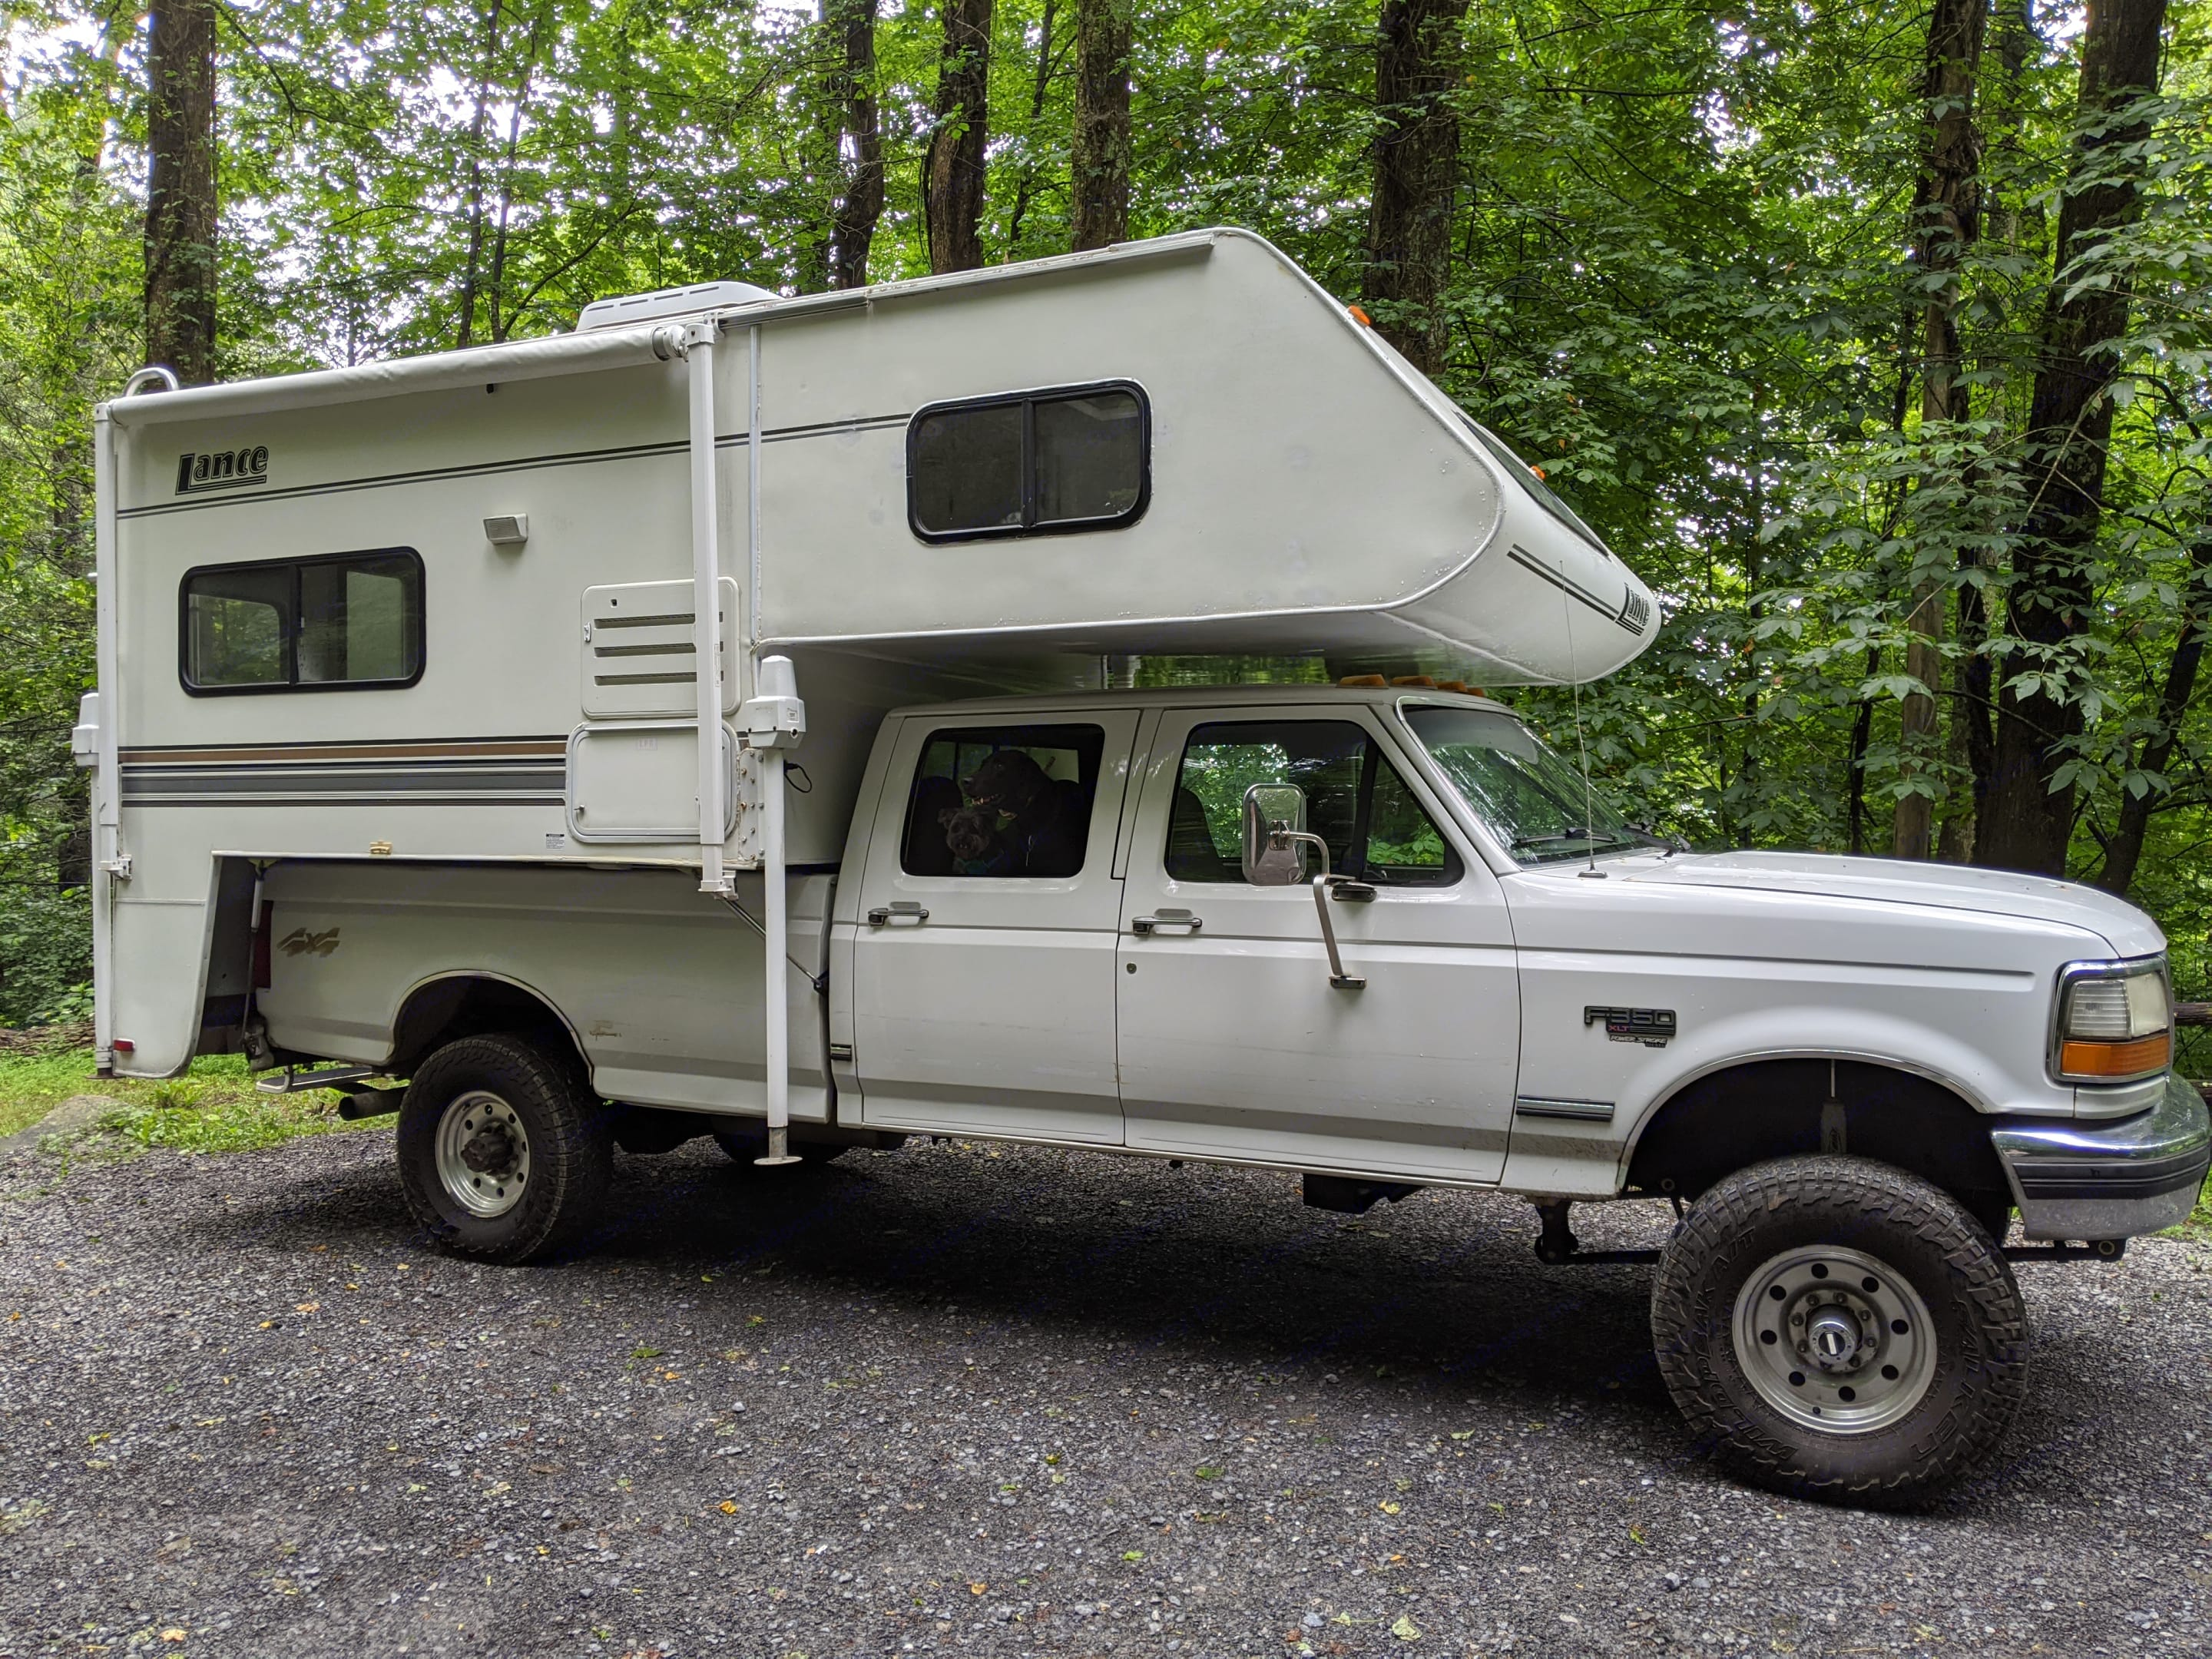 This truck-bed camper set-up (Lance and F-350 diesel truck) makes camping cozy and full of adventure!. Lance 915 2006